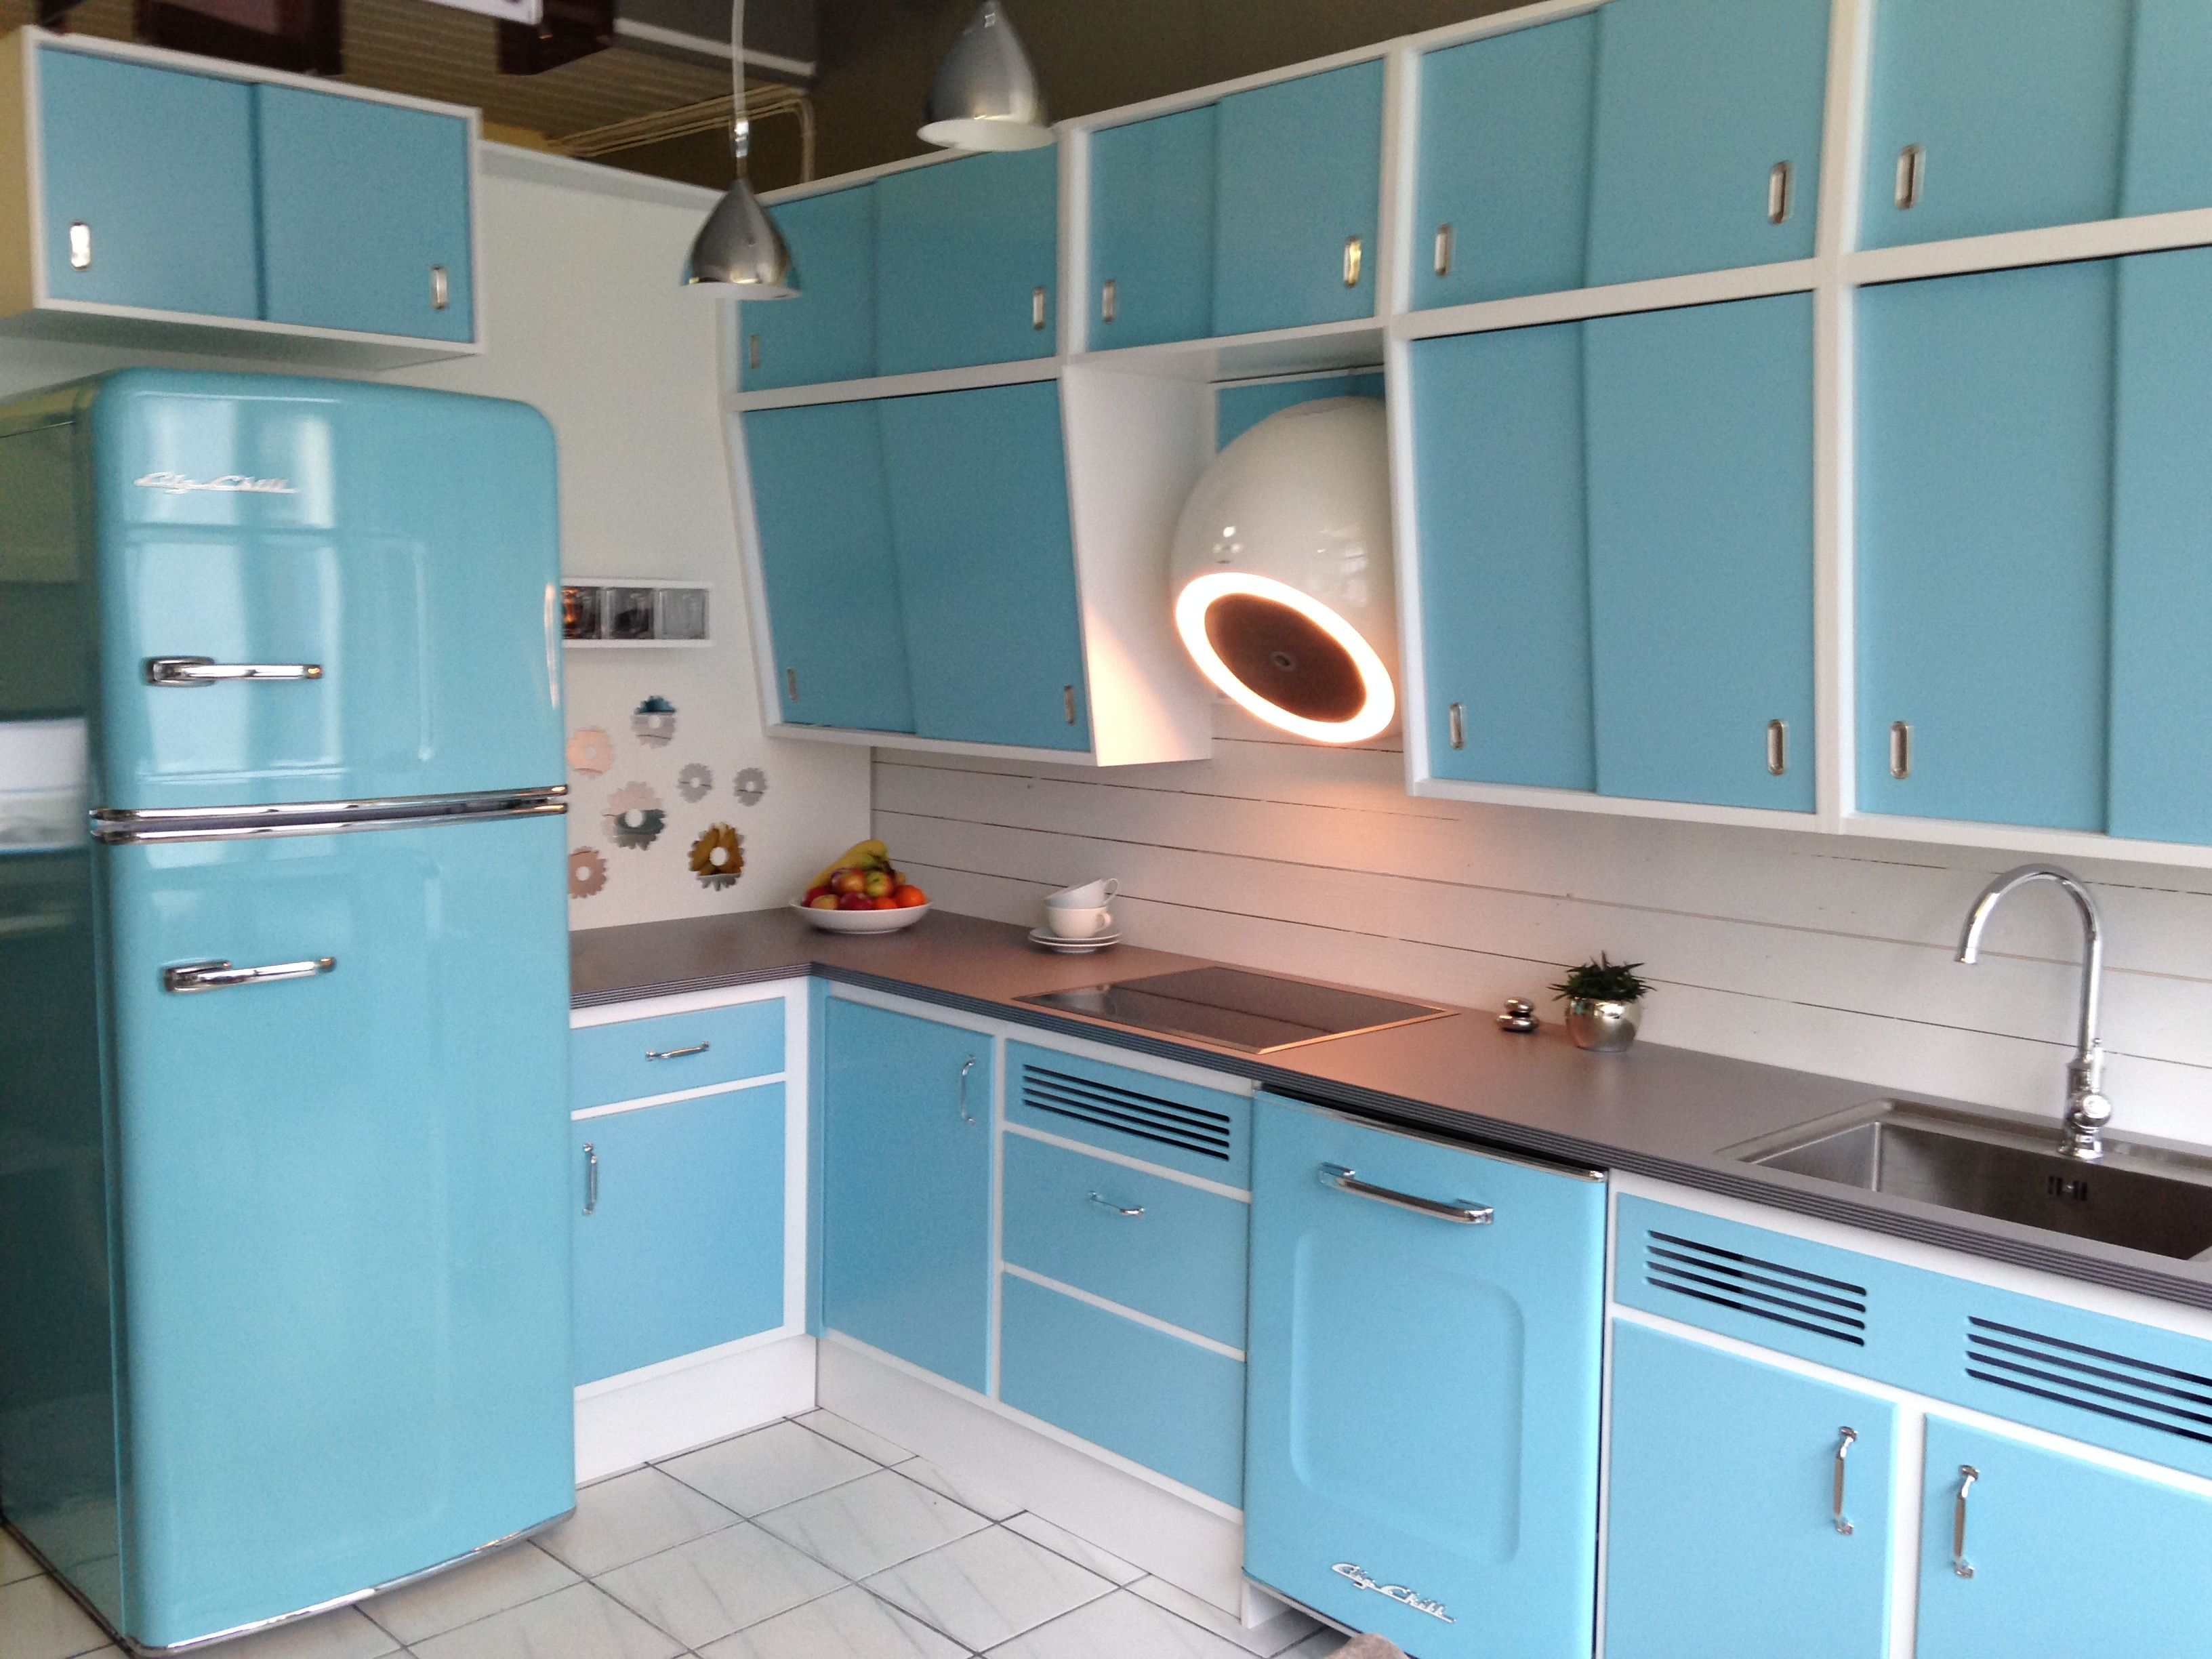 big chill appliances in perfect harmony with retro kitchen big chill appliances retro kitchen on kitchen appliances id=14522